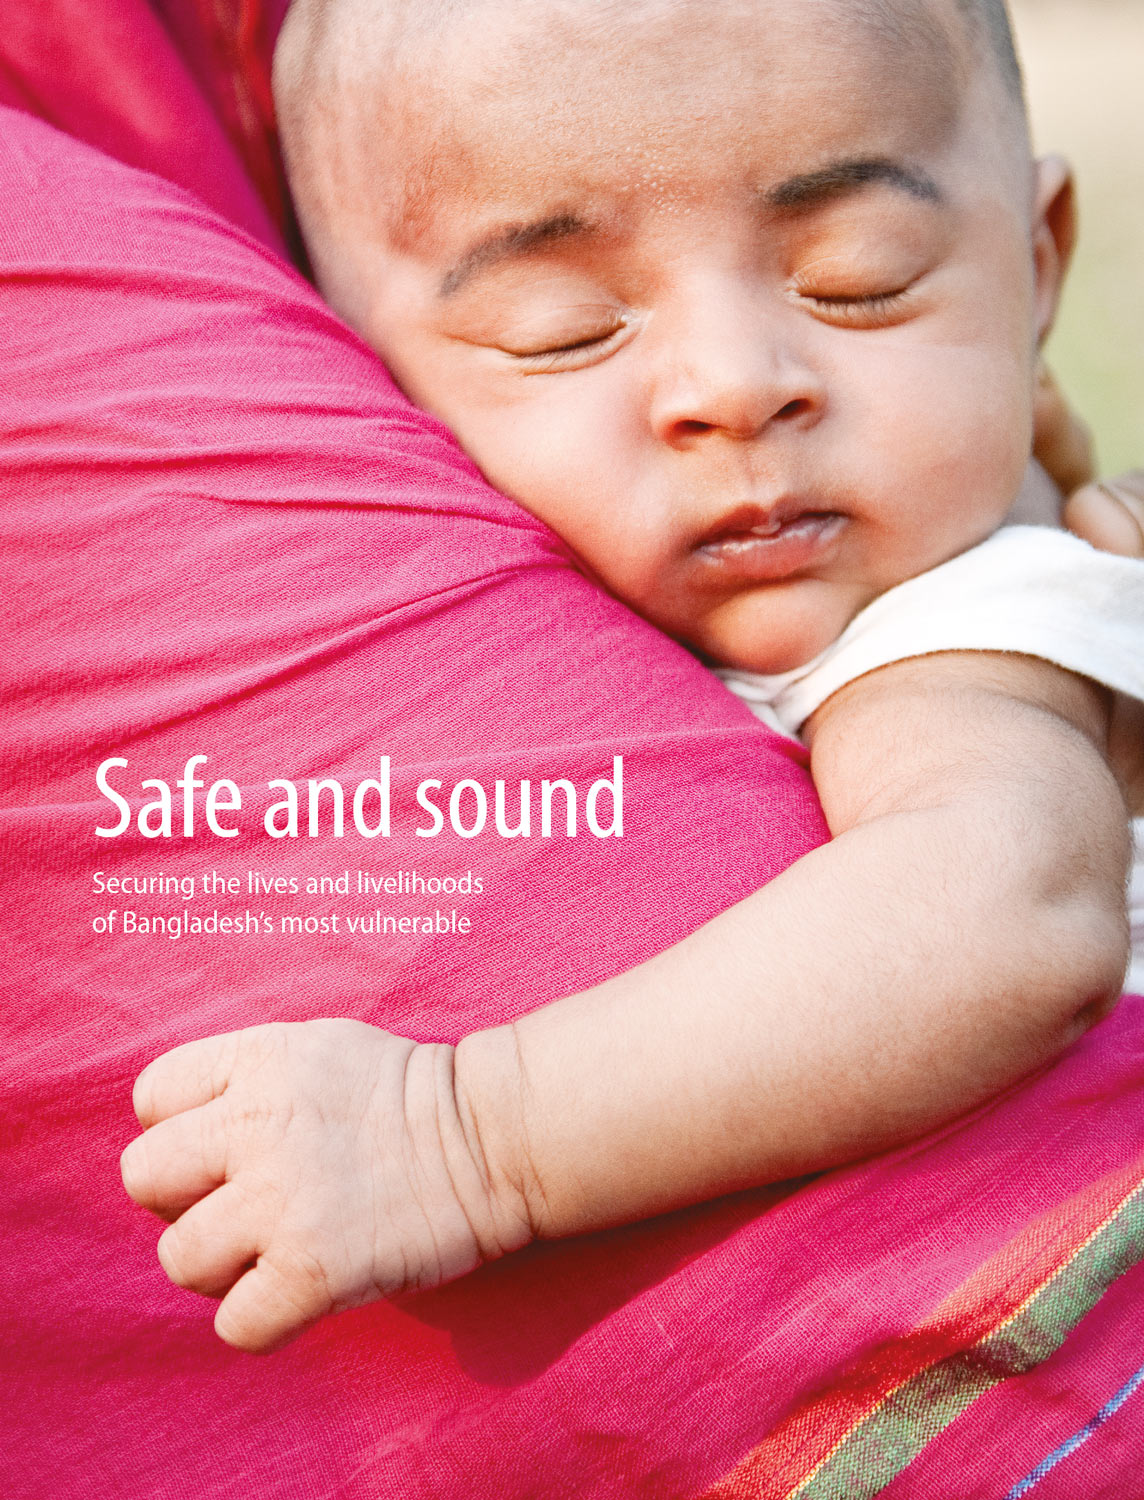 Safe and Sound: Securing the Lives and Livelihoods of Bangladesh's Most Vulnerable